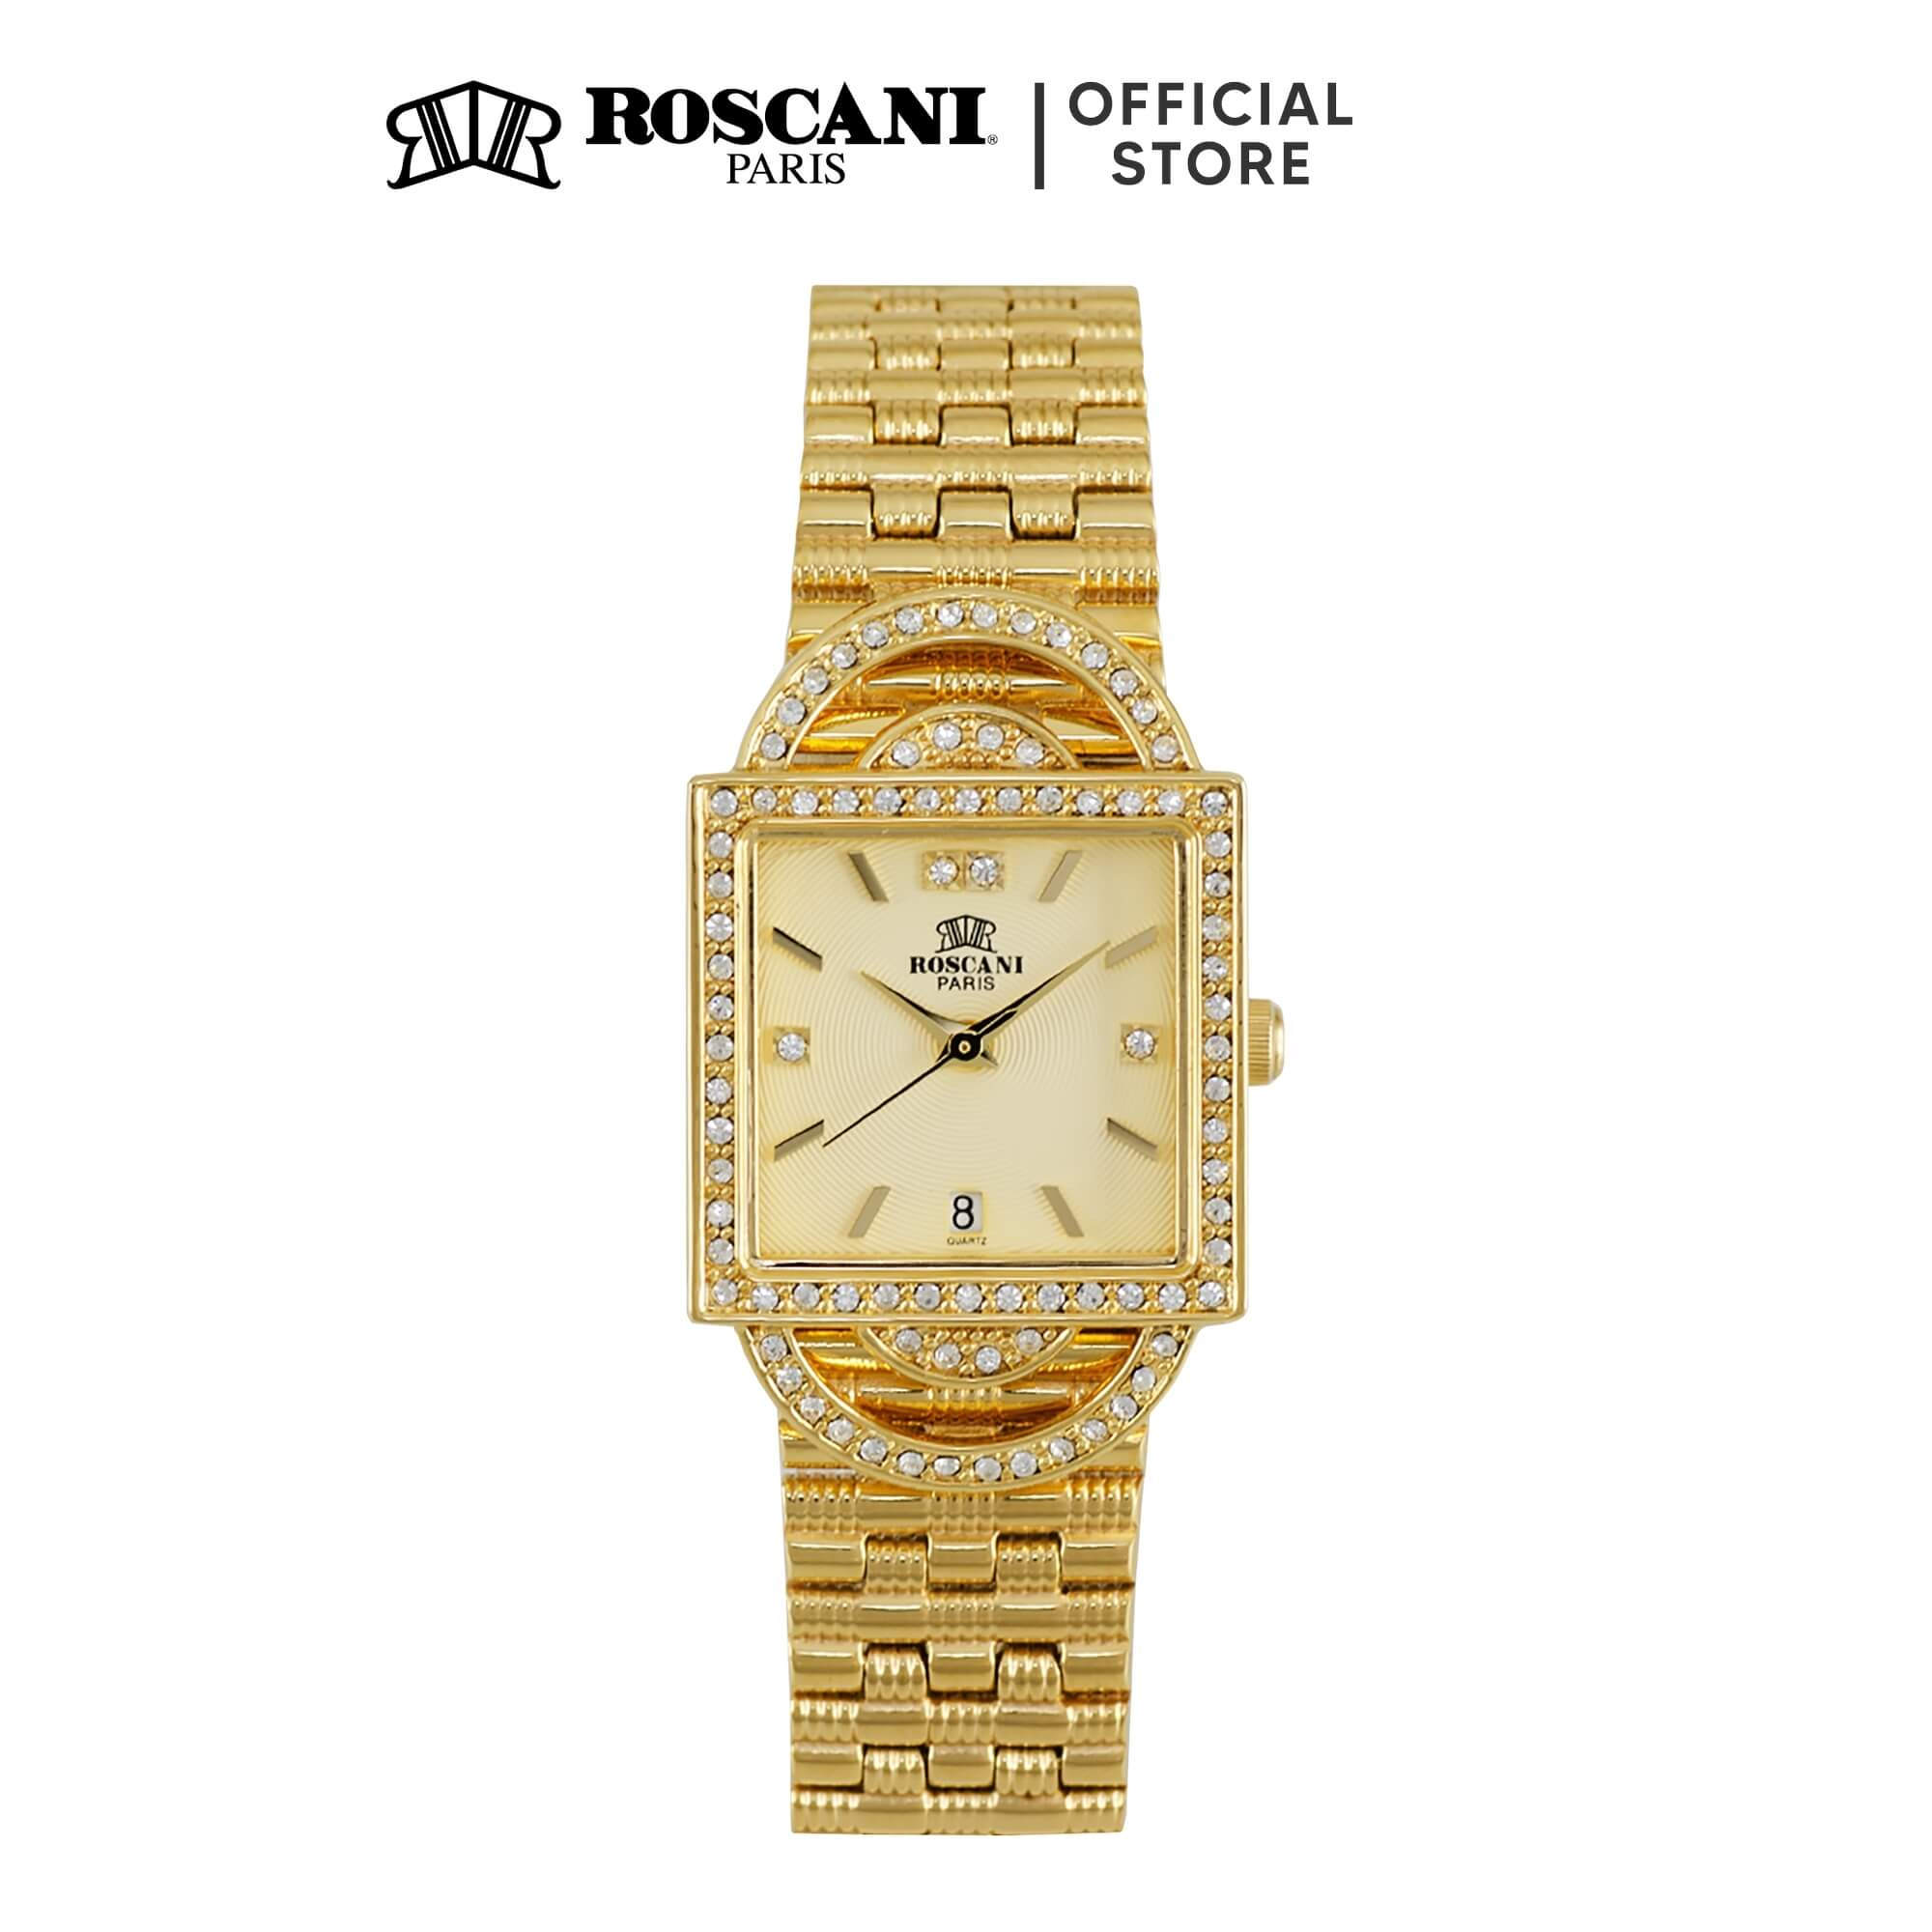 Roscani Elora B96 (23K Gold Plating) Bracelet Women Watch